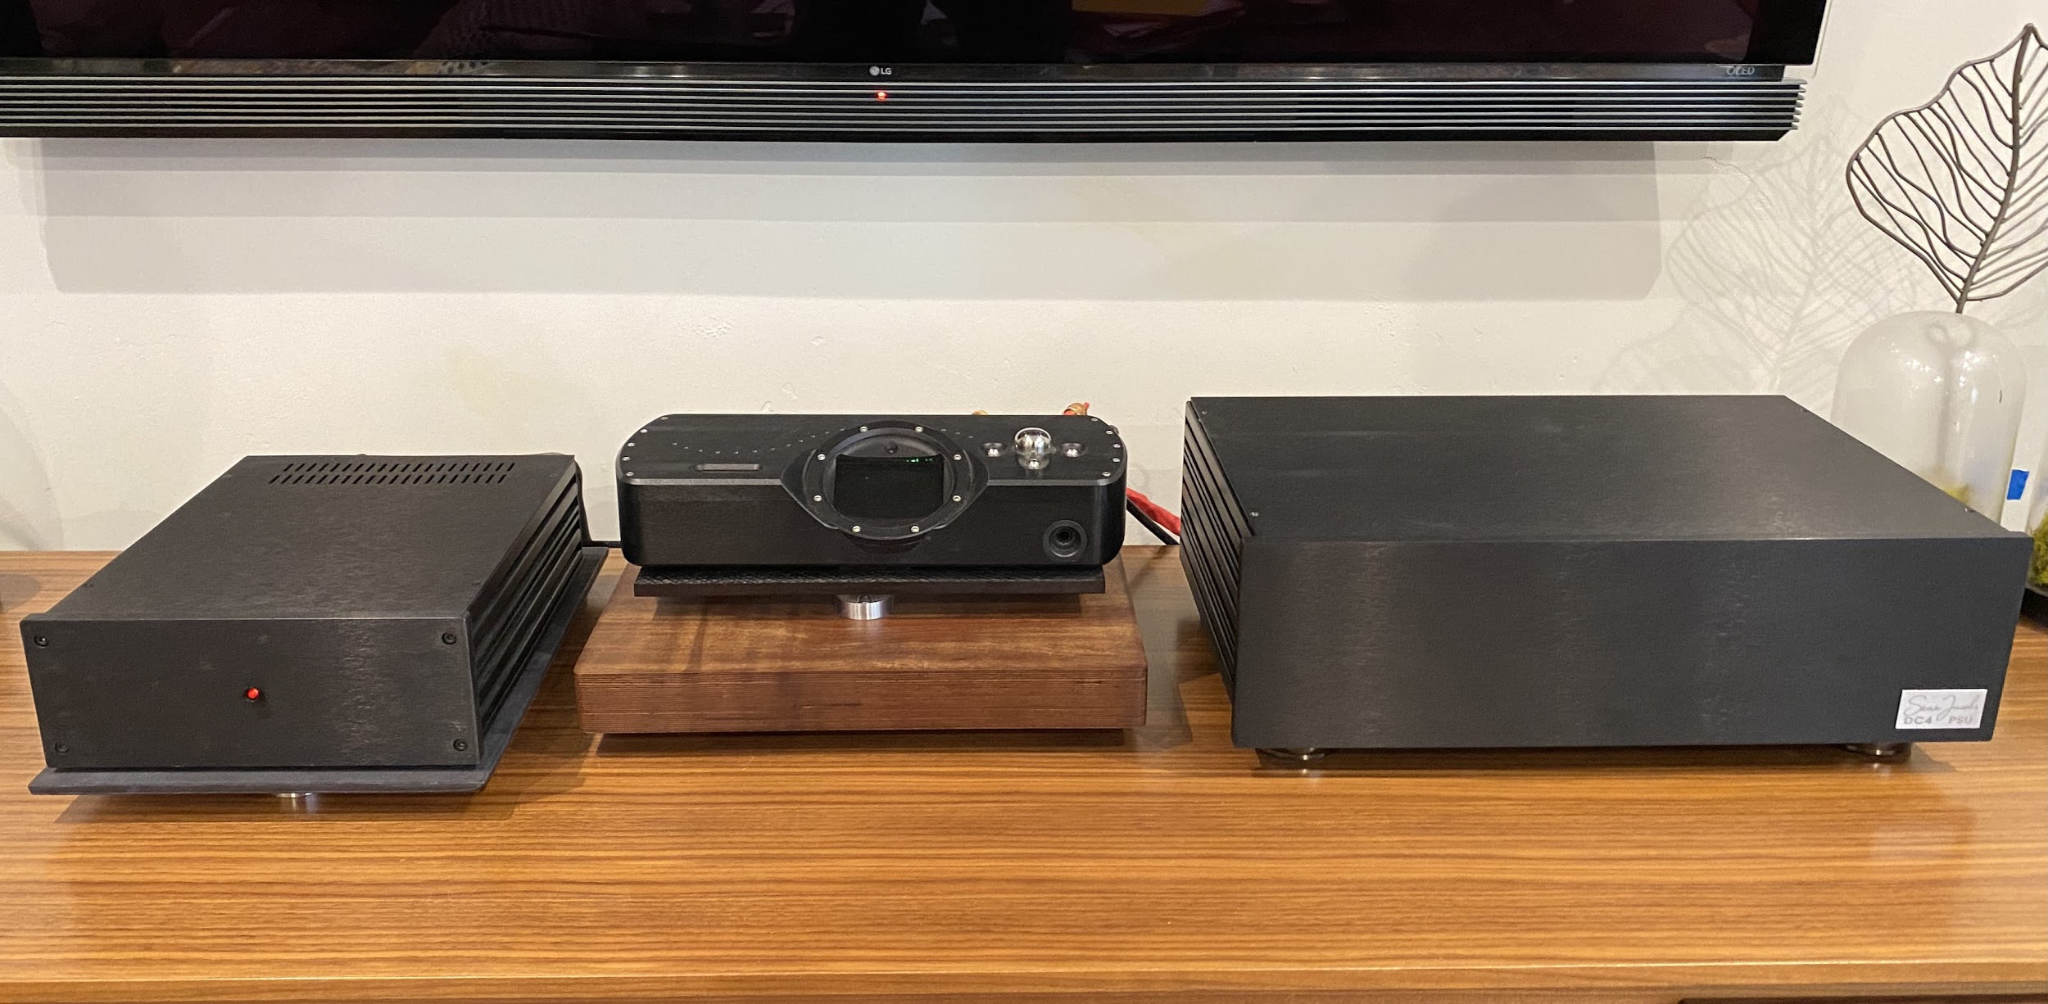 Reality Quest: Power and Digital Audio with the Sean Jacobs DC4 and Sound Application PGI TT-7 (Part 1 of 2)